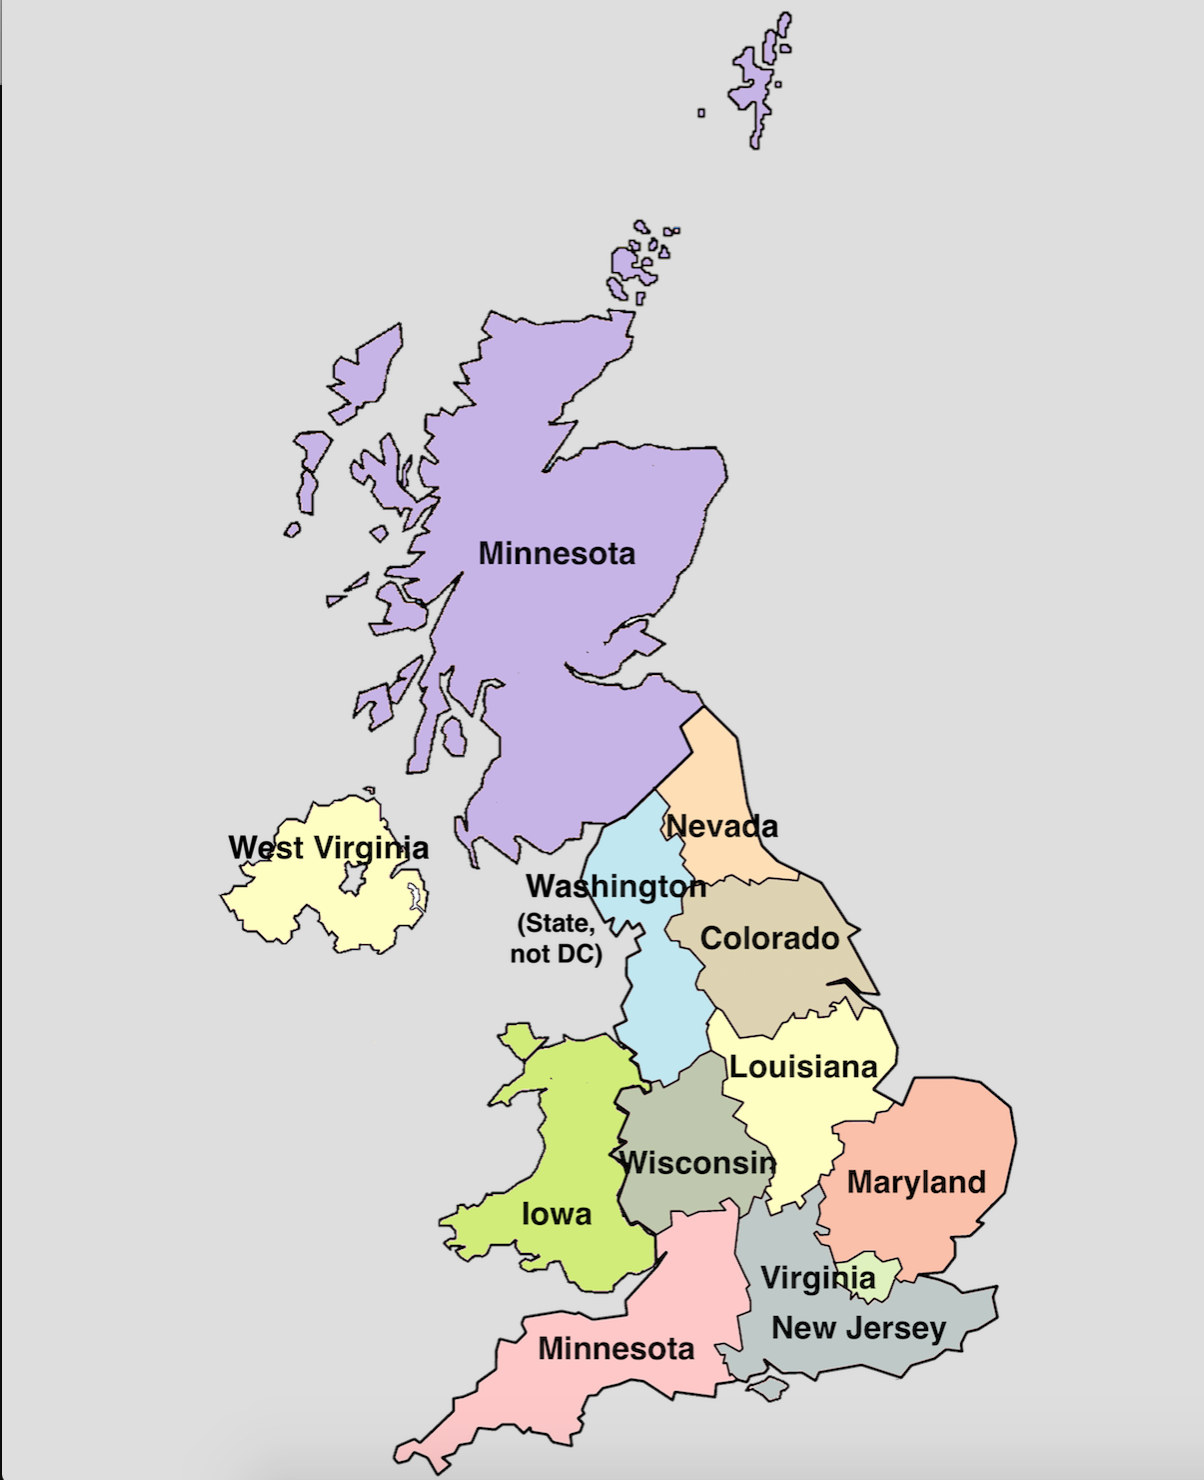 UK Regions Labeled As US States With Similar Populations Maps - Map Of The Us And Britain